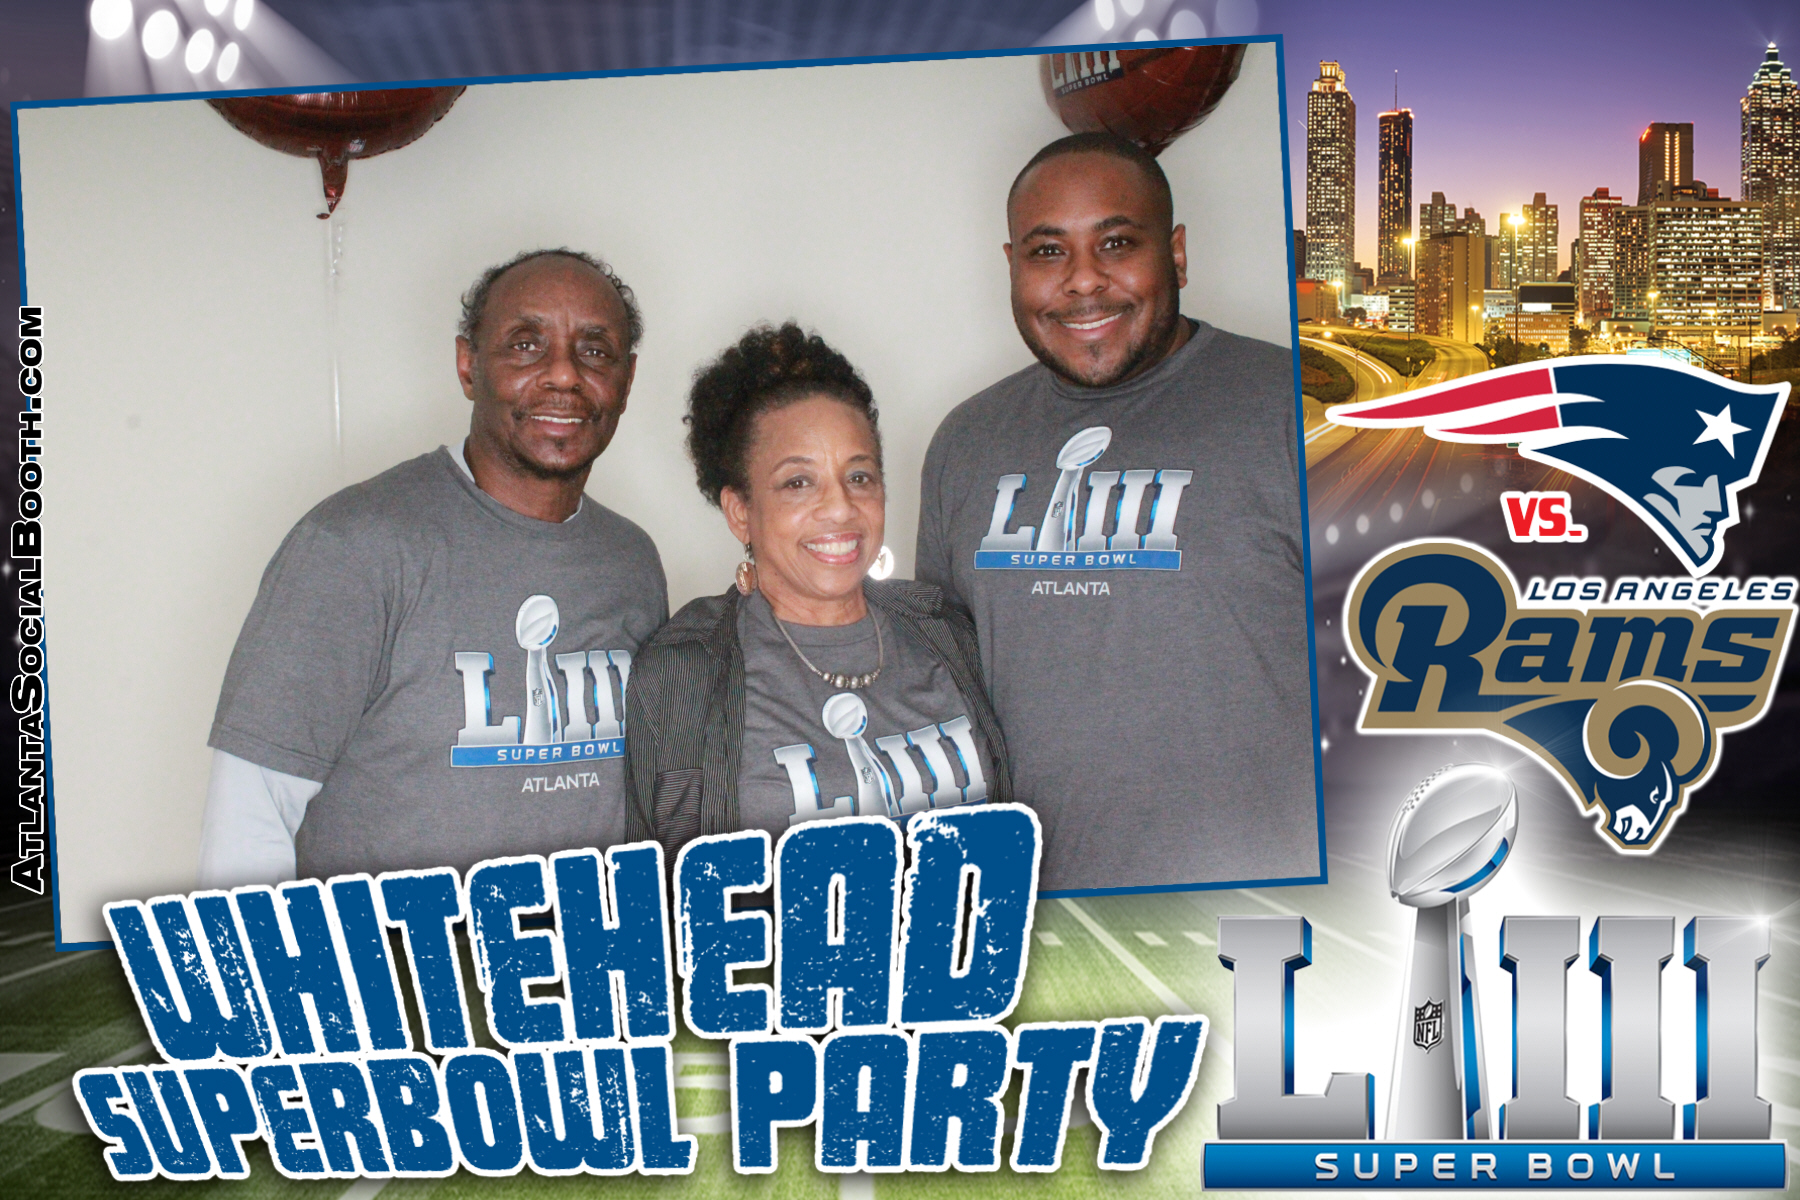 Whitehead SuperBowl Party 53